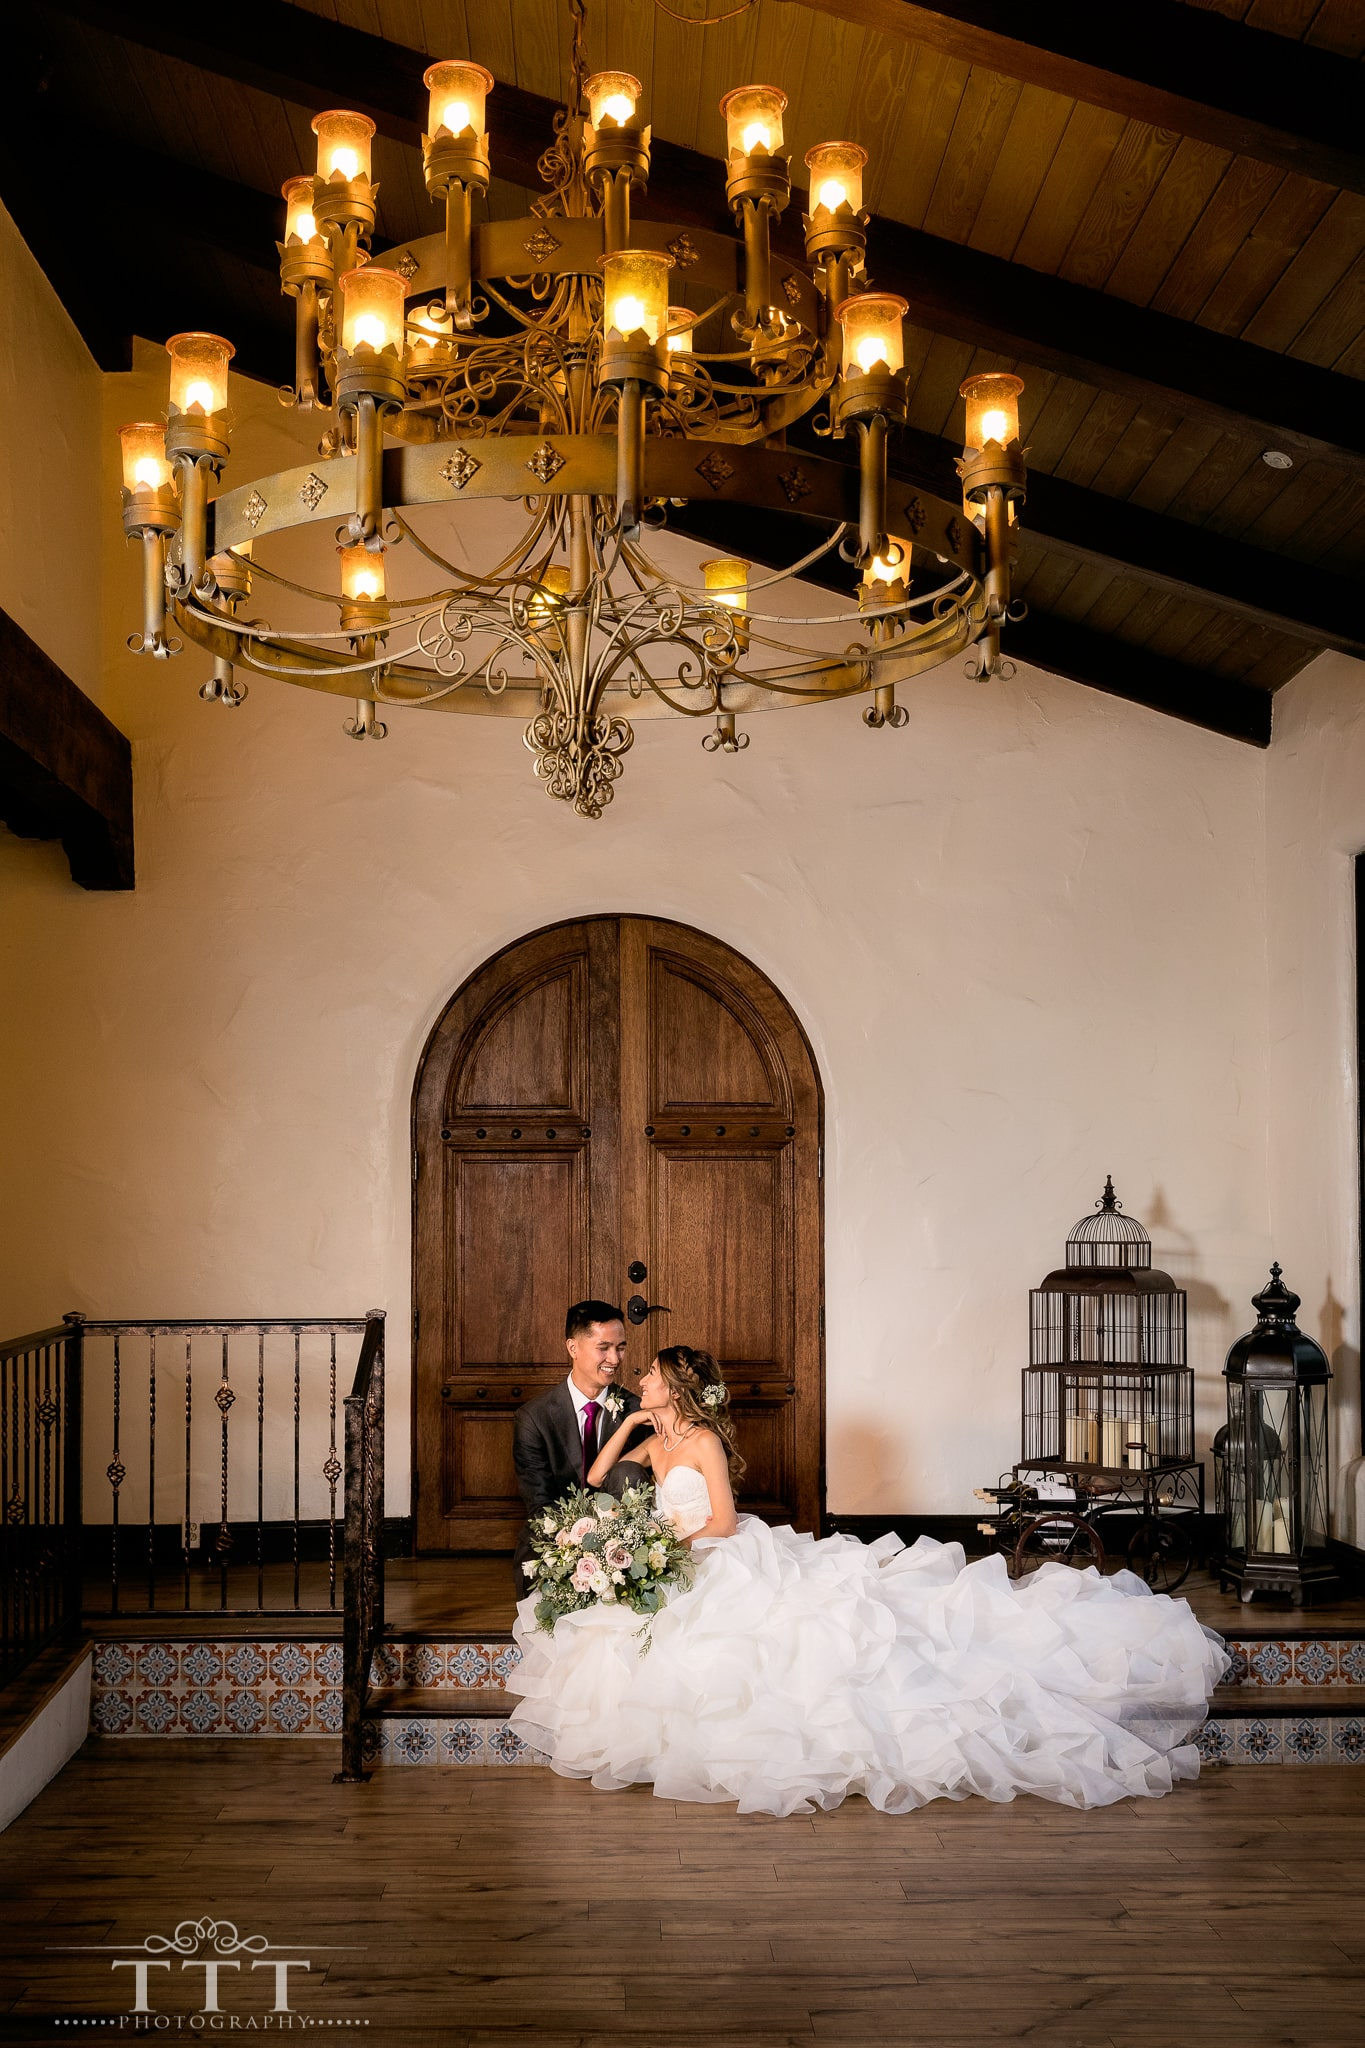 Mary Ann Looked So Lovely In Her Ed Strapless Bridal Gown With Ruffled Skirt She Wore A Sheer Veil And Was Poetry Motion As Posed For Me